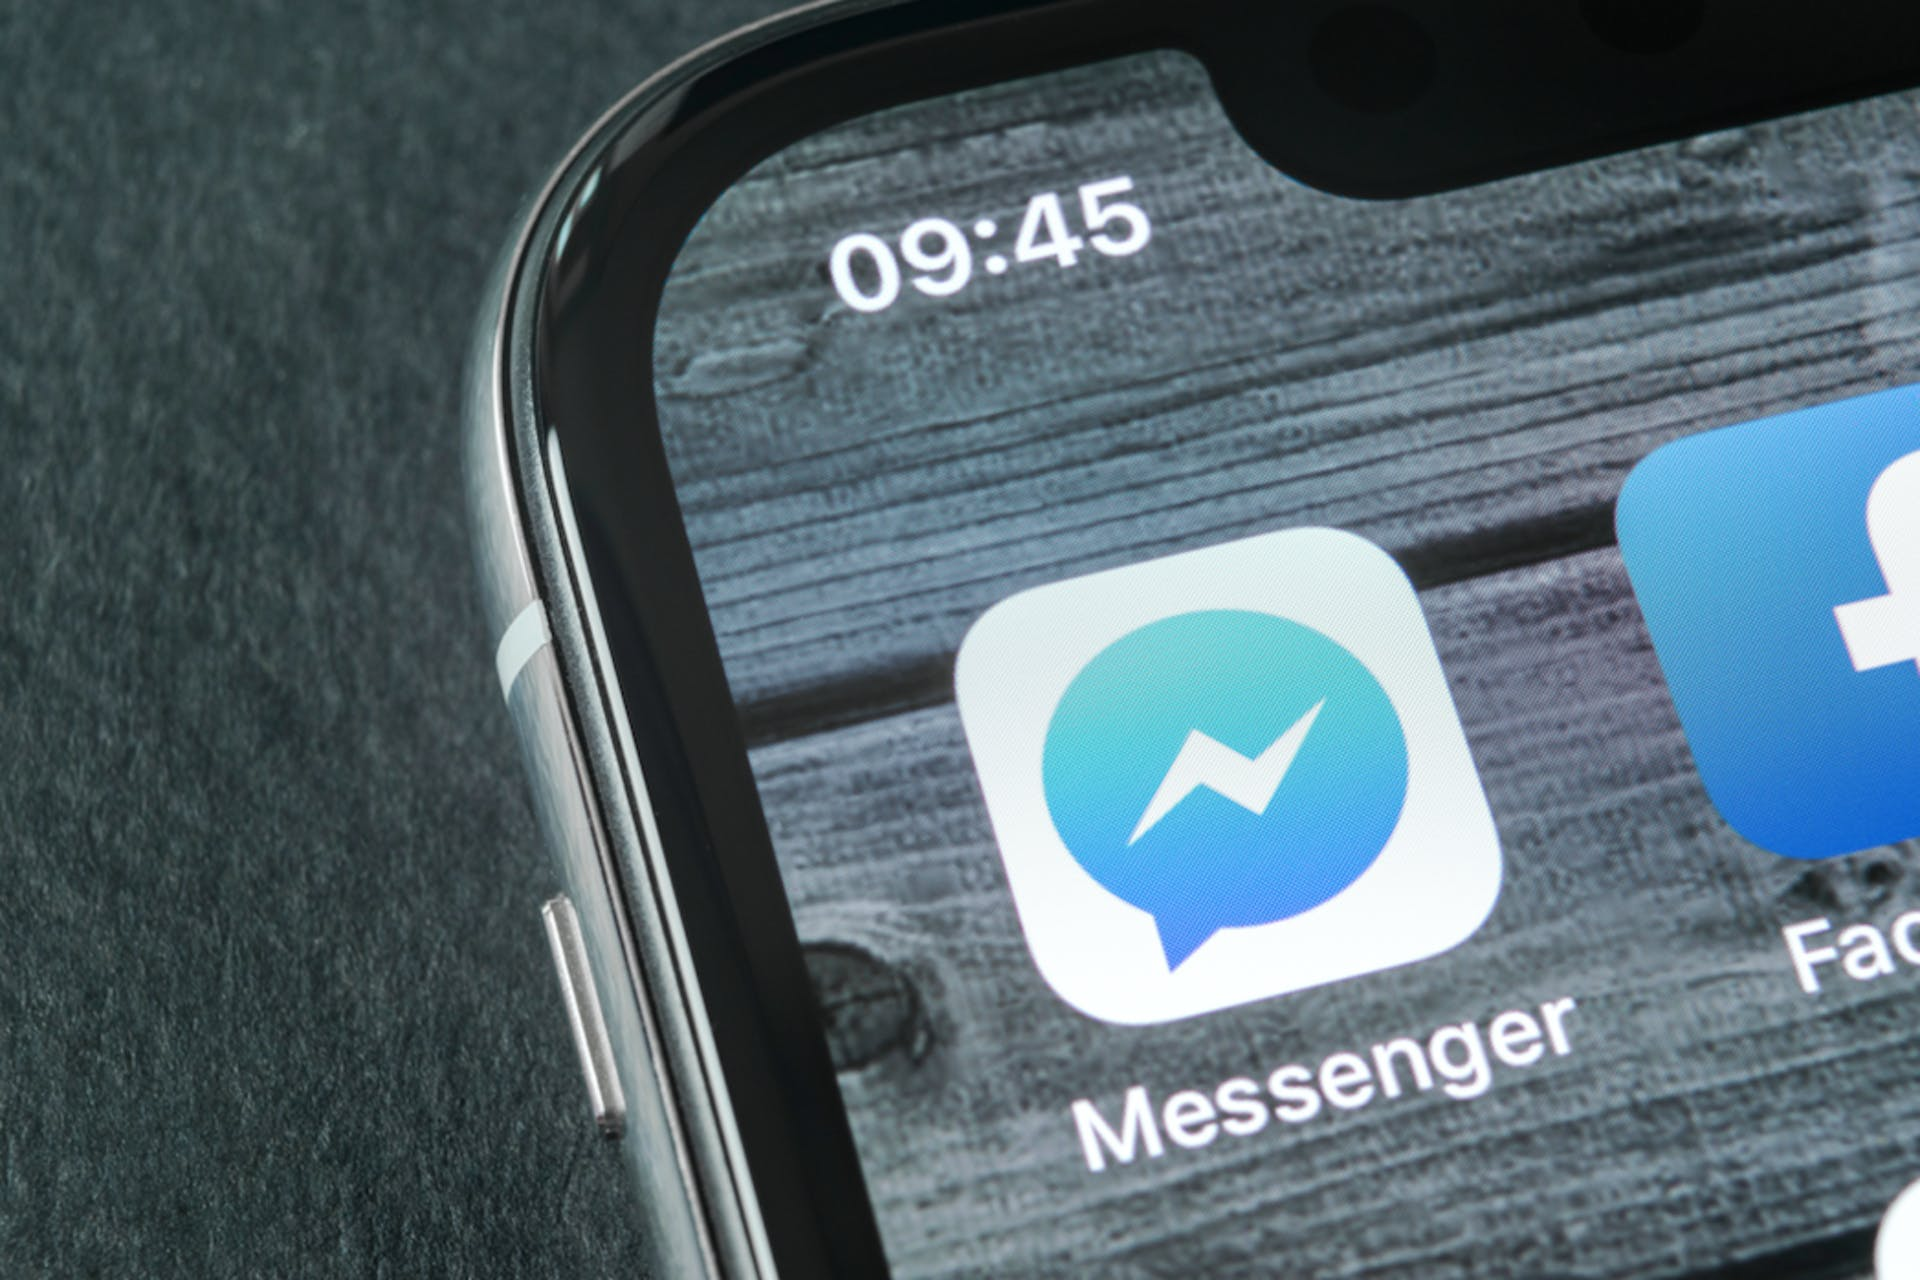 Facebook Messenger app icon on a phone